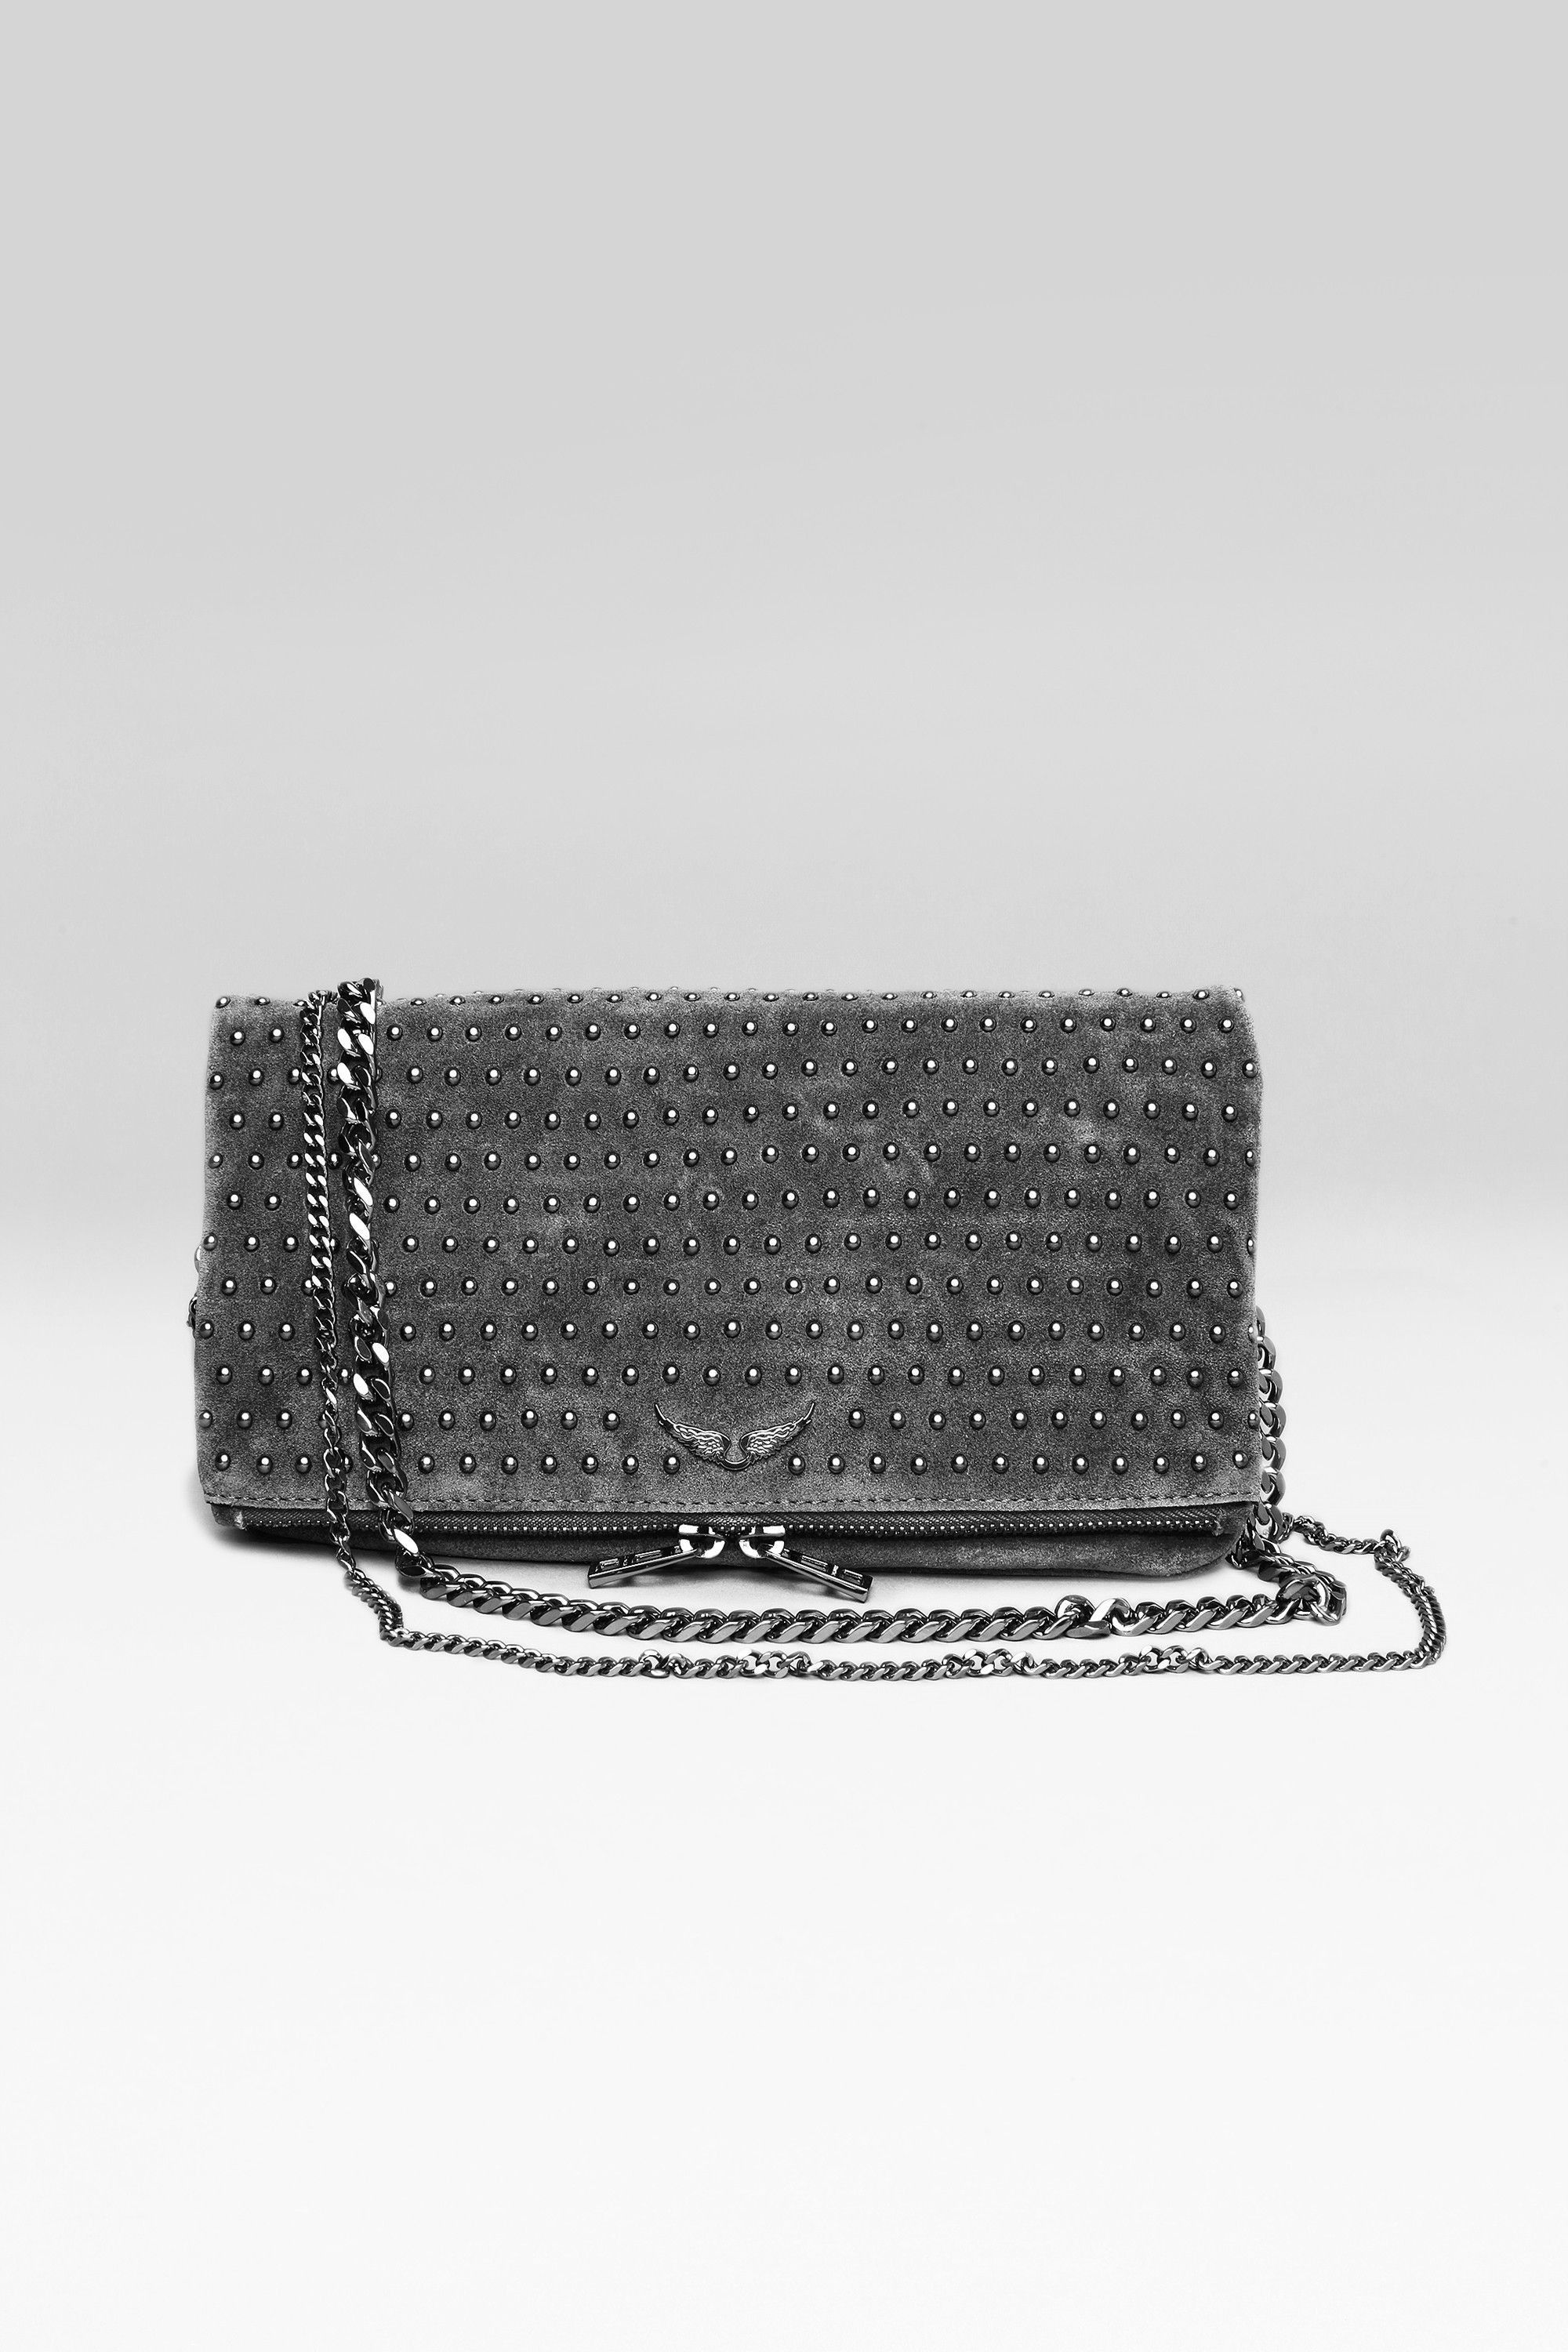 Zadig et Voltaire iconic zipped clutch, studs all over, zipper with double  slider, rectangular format that folds, with adjustable curb chain, interior  patch ... e3480800c9